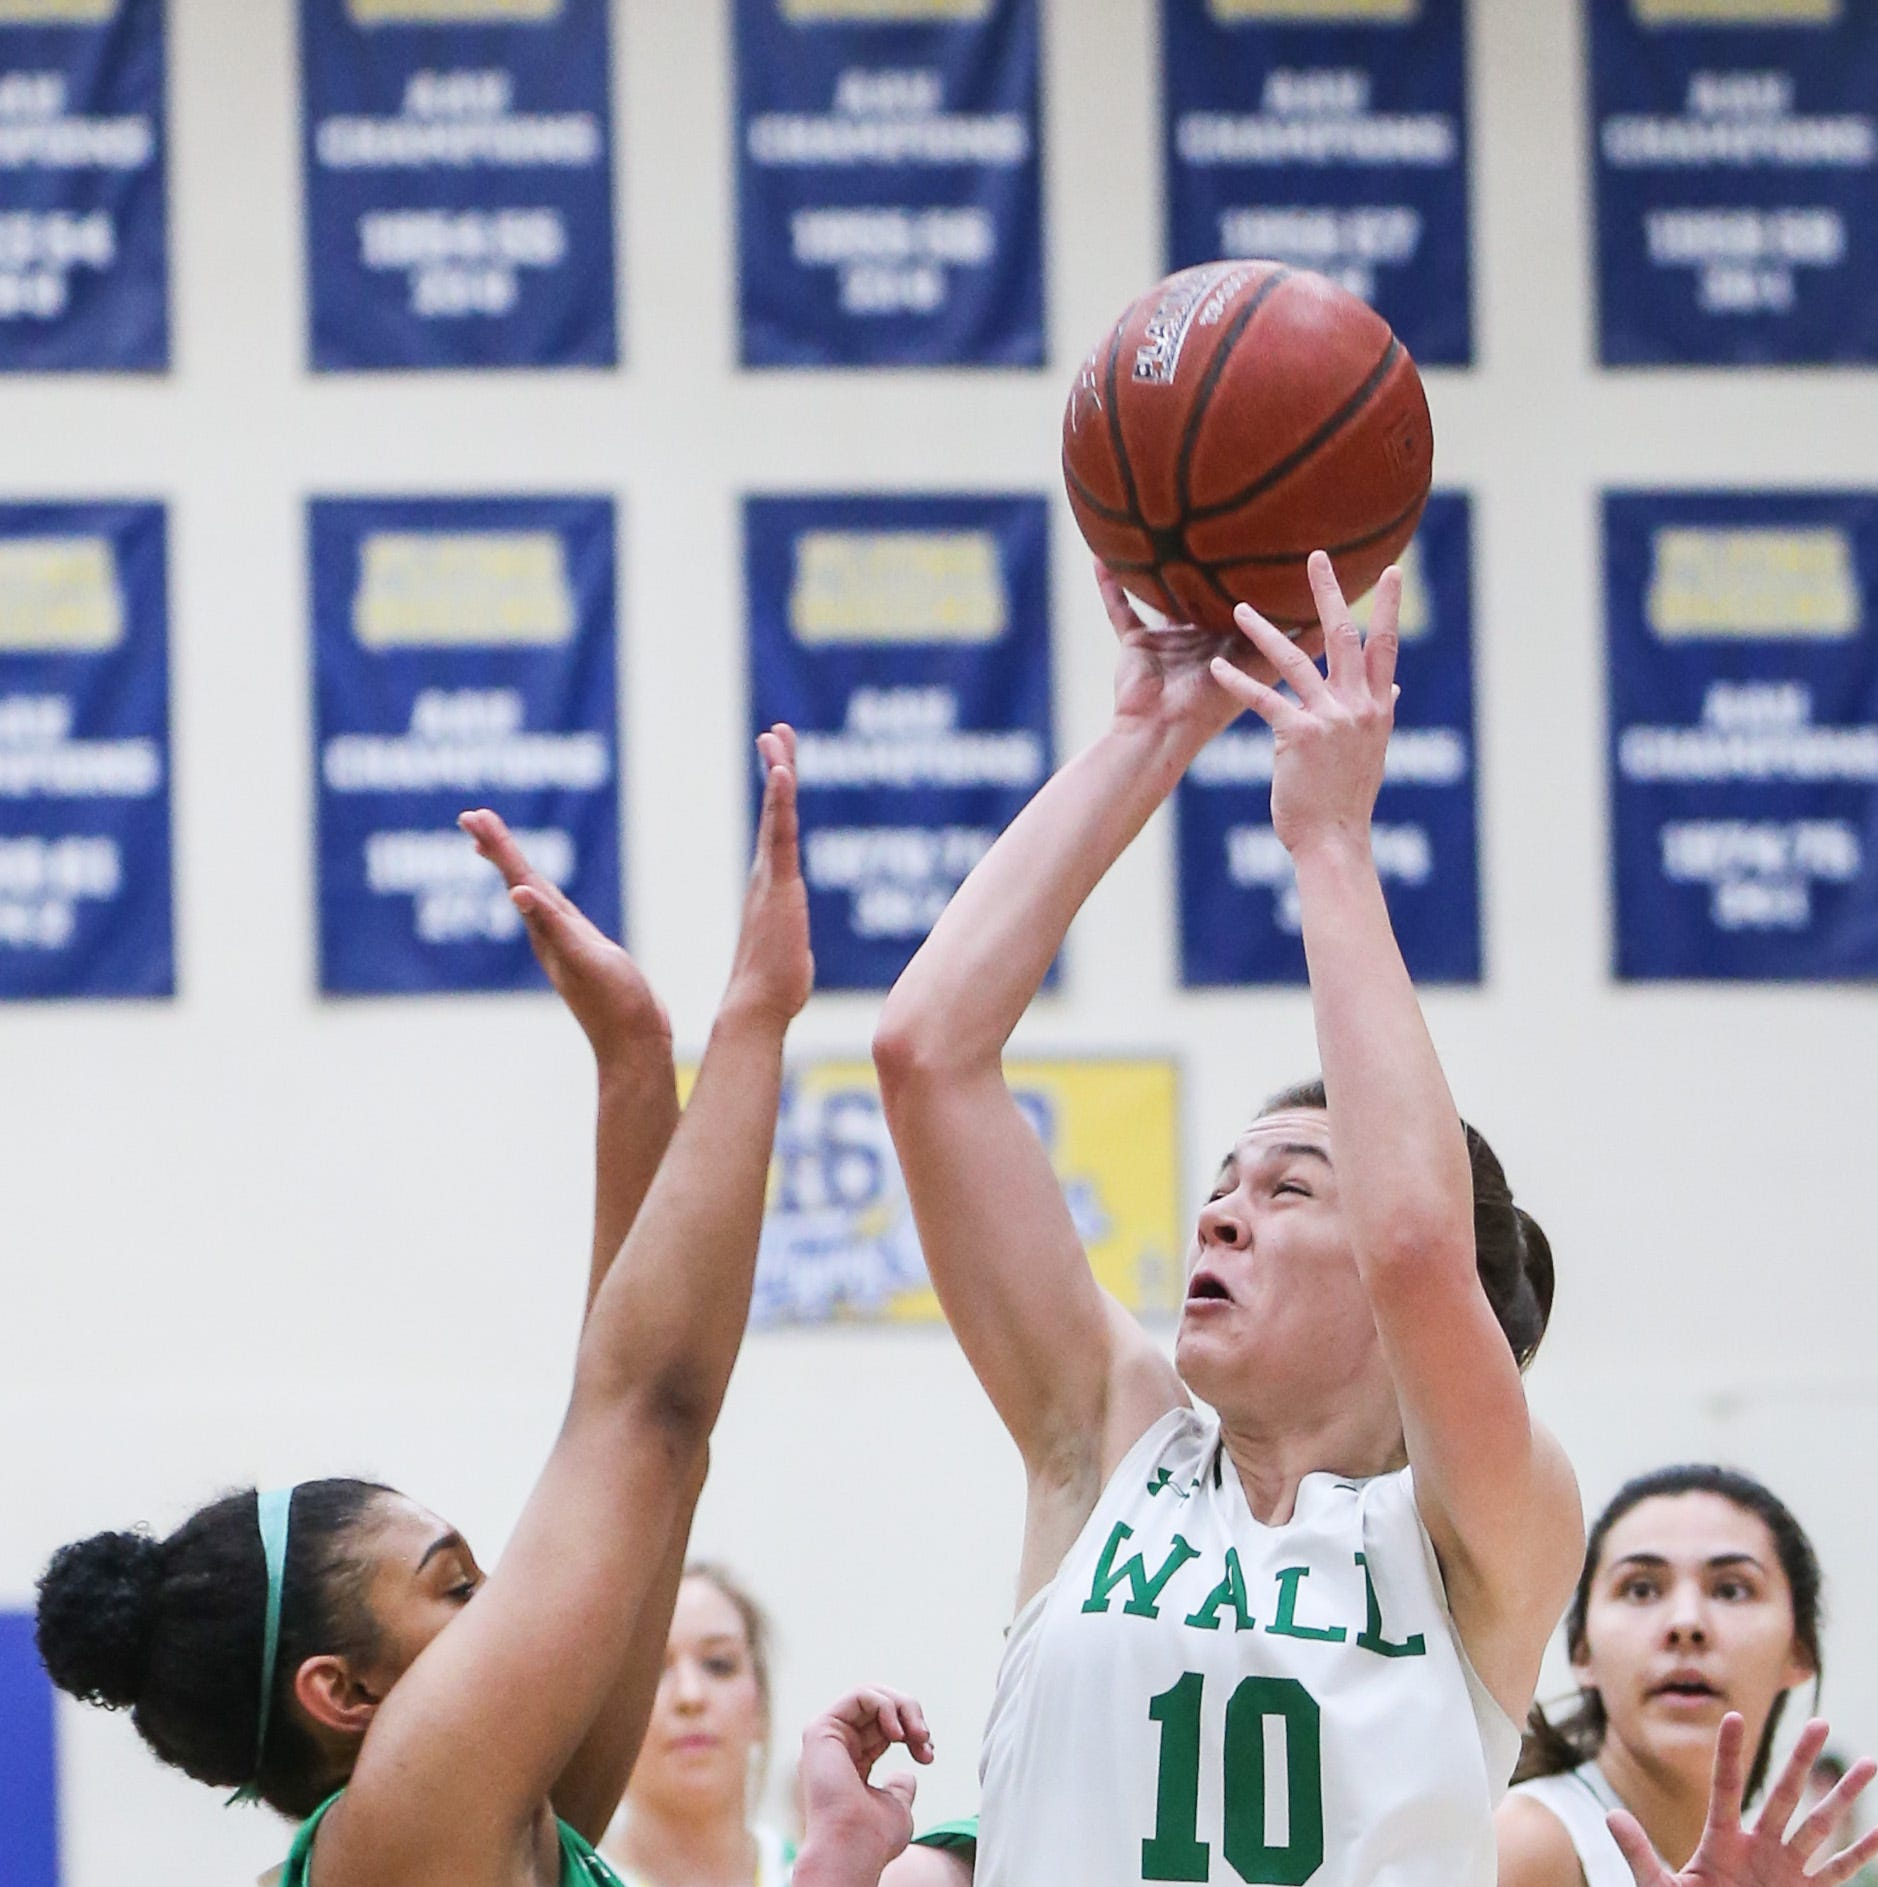 Third-quarter run powers No. 1 Wall girls basketball to state tournament